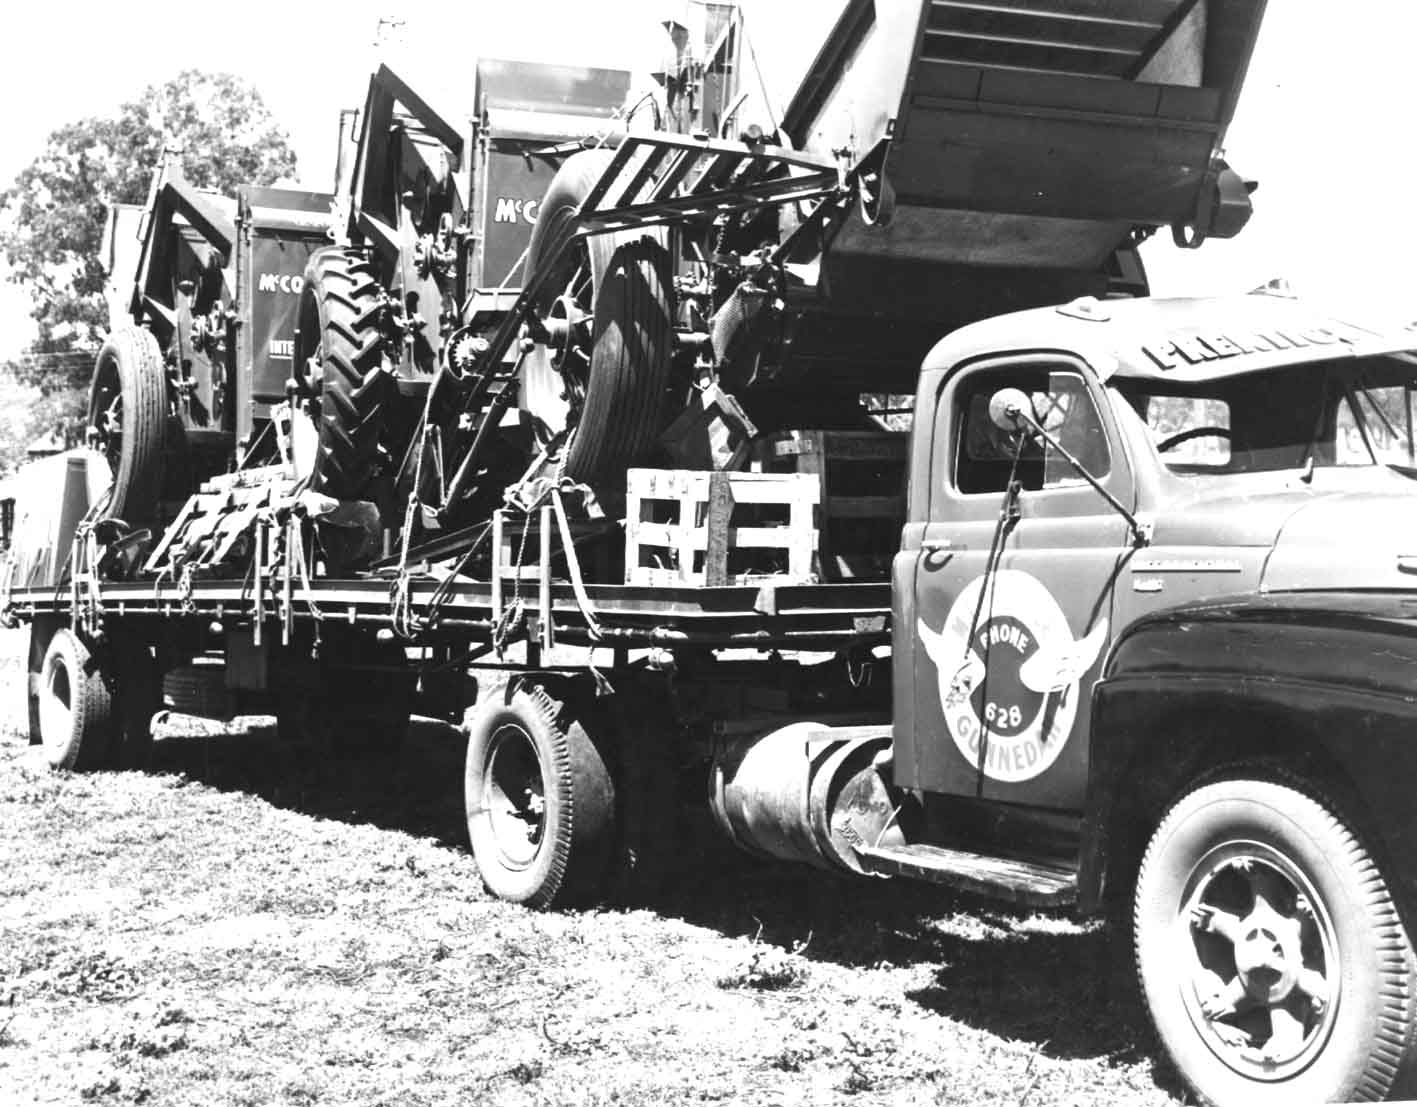 shows a AA series international truck with the single axle trailer loaded with three harvesters circa 1958